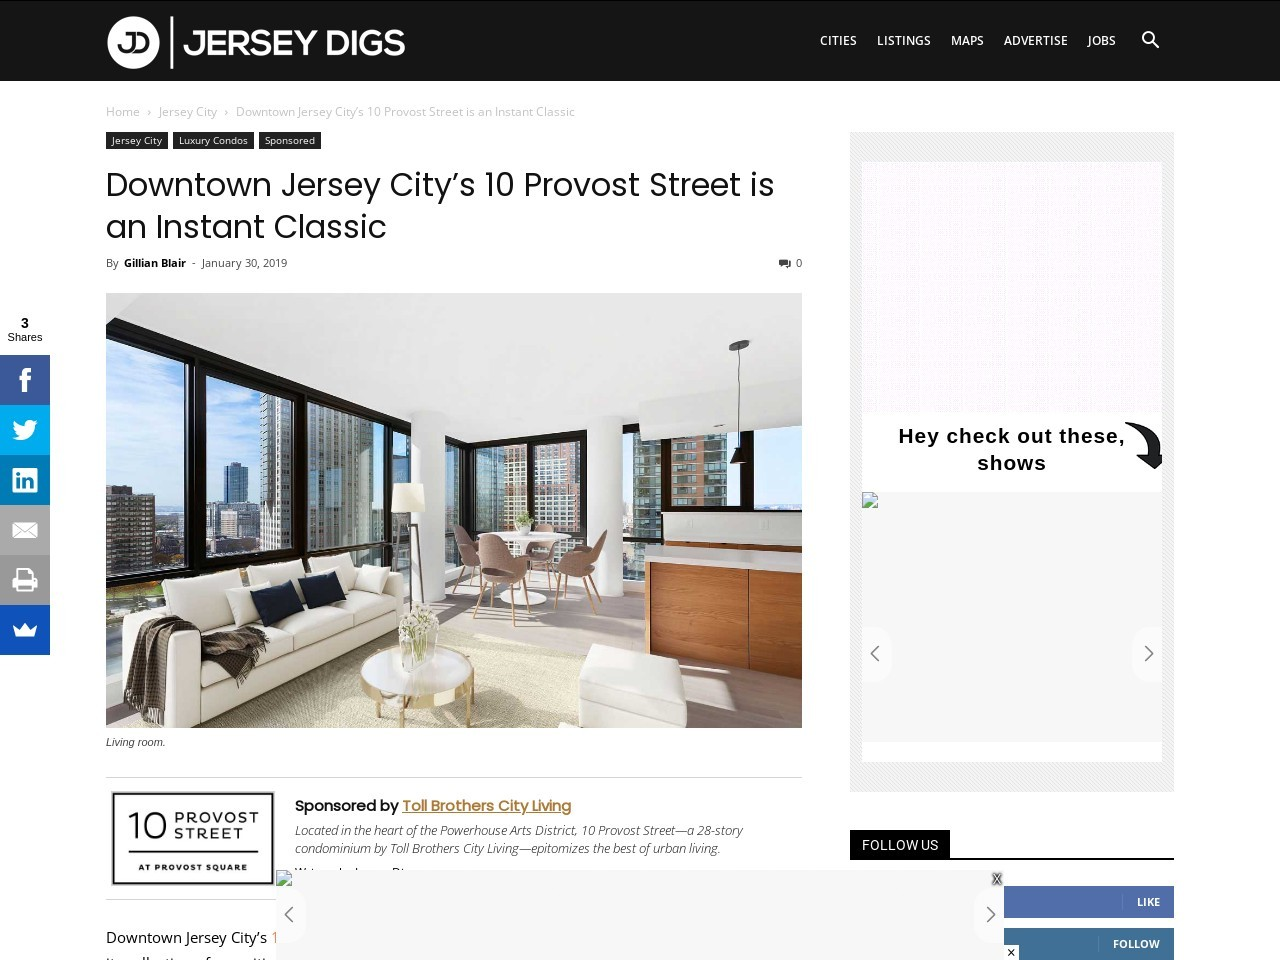 Downtown Jersey City's 10 Provost Street is an Instant Classic